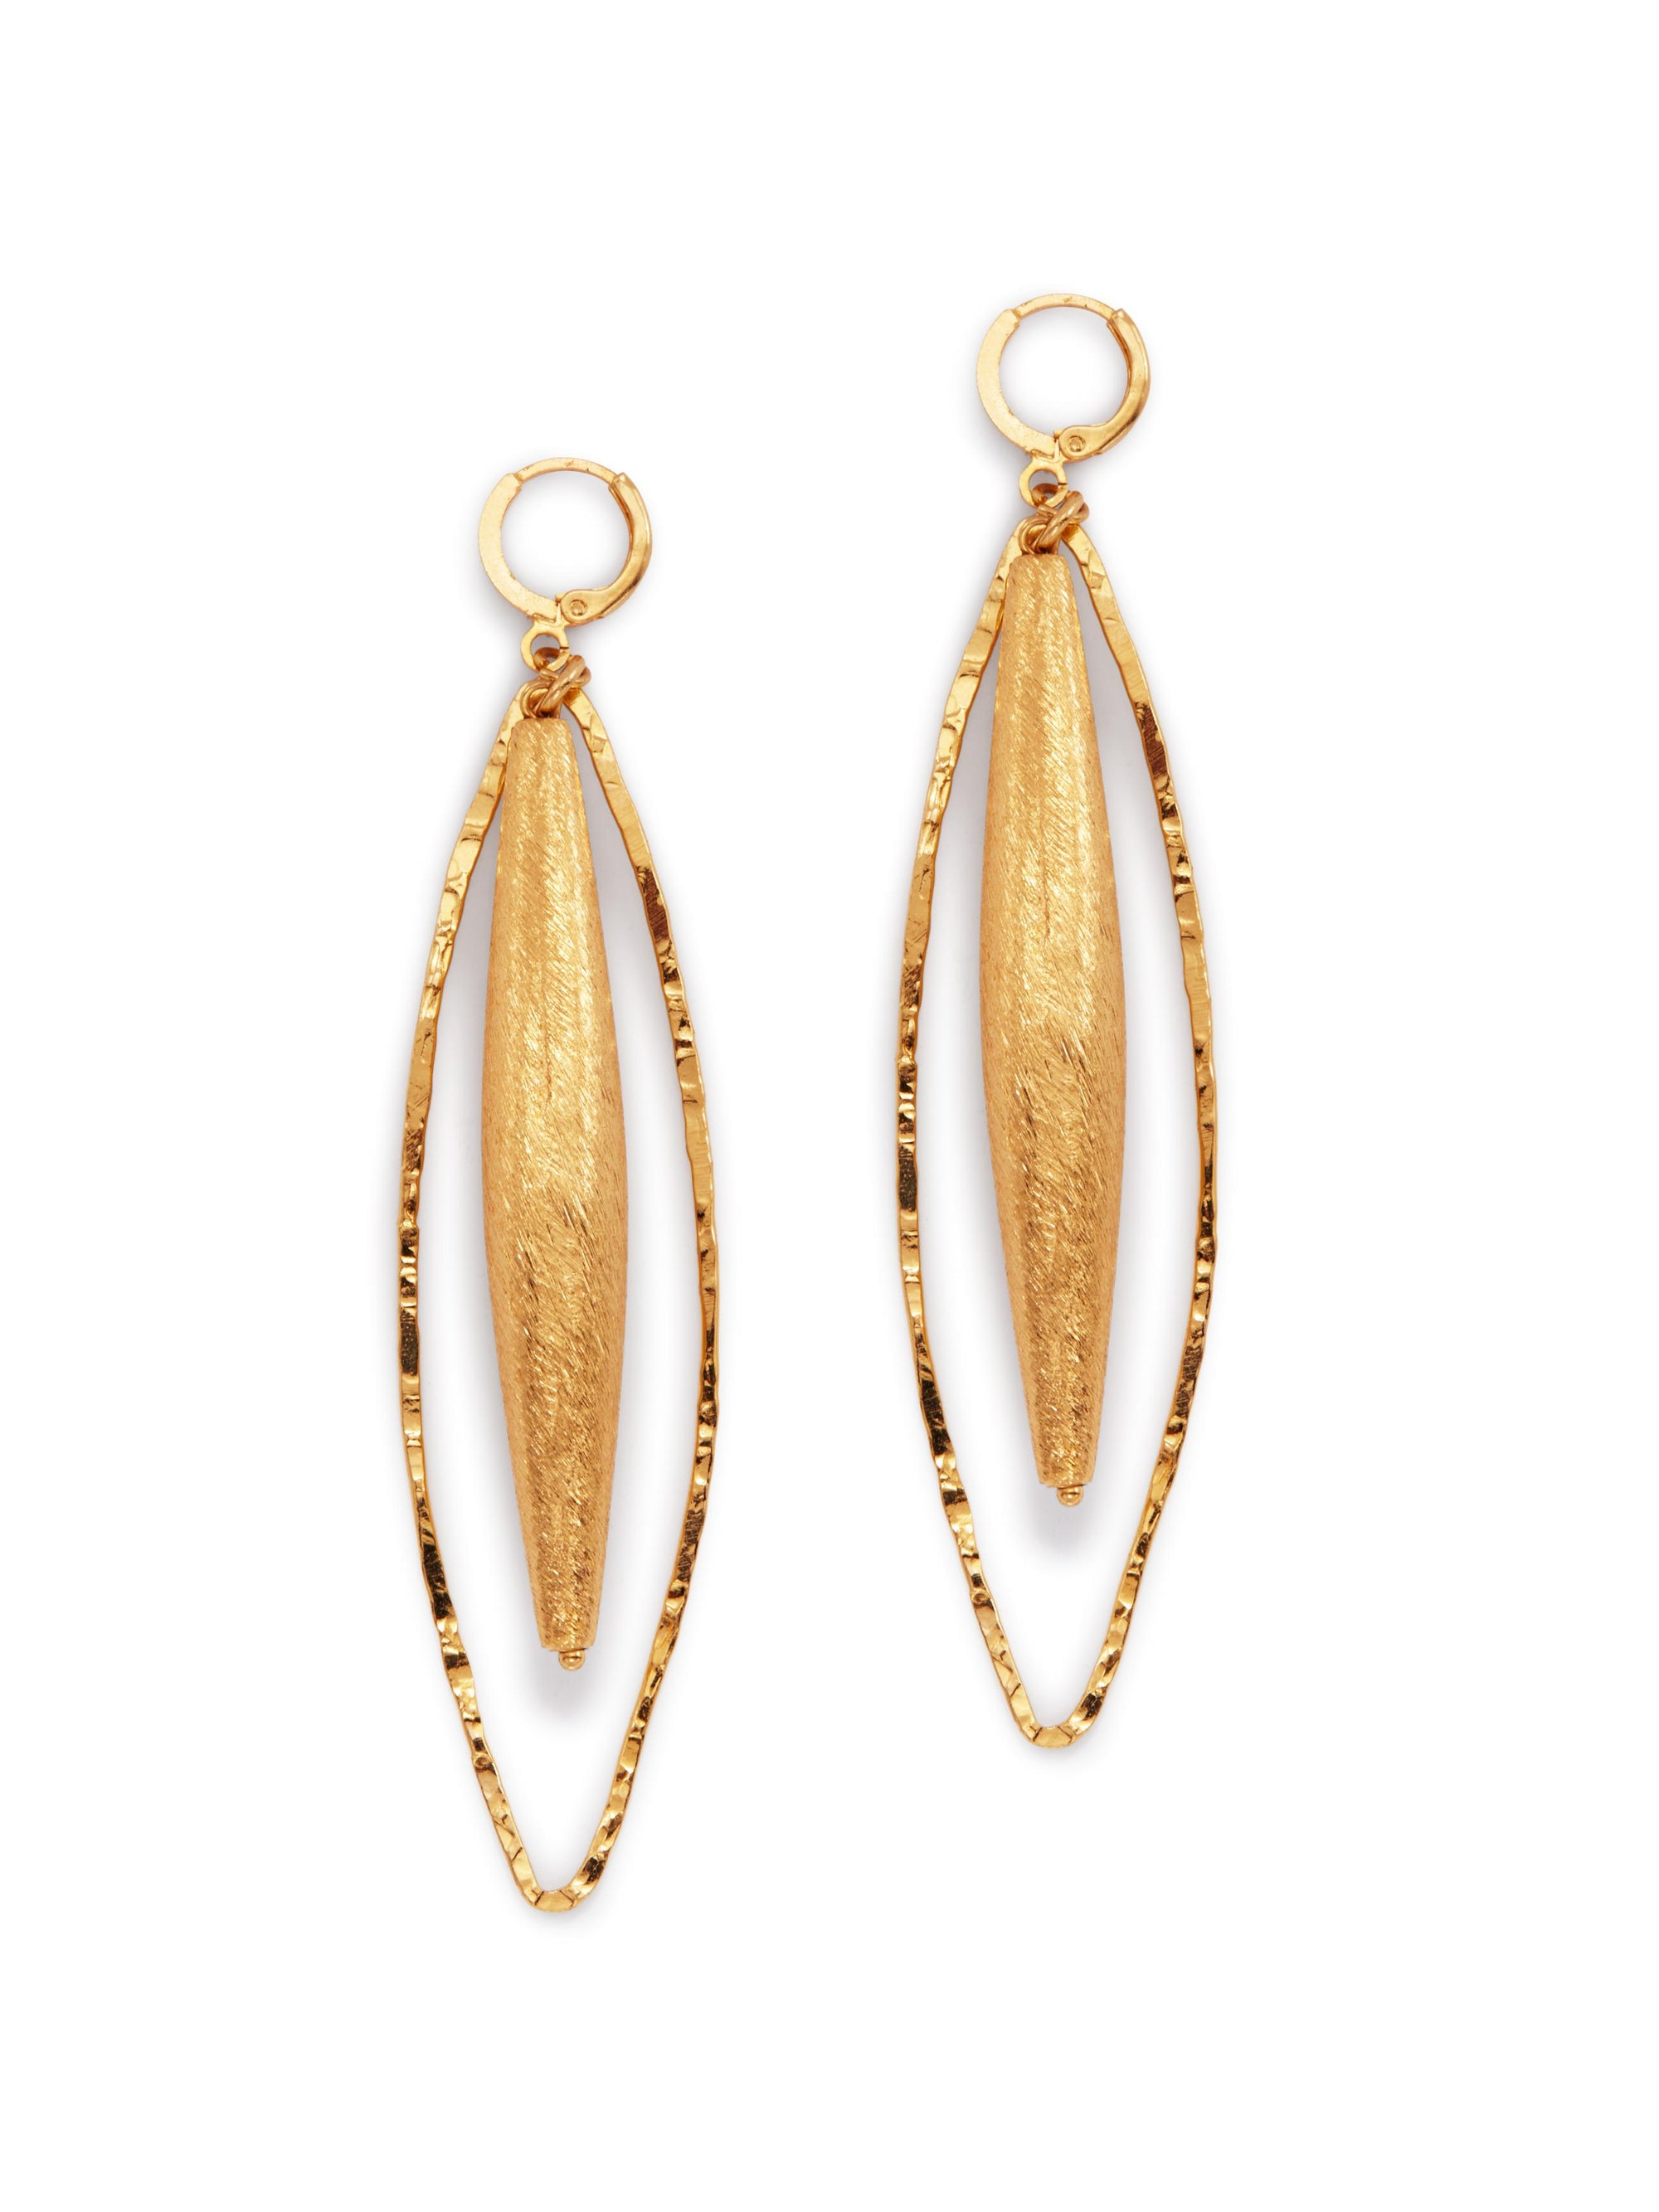 Zeppelin Hailey Gold Leverback Earrings-Earrings-JAREDJAMIN Jewelry Online-JARED JAMIN